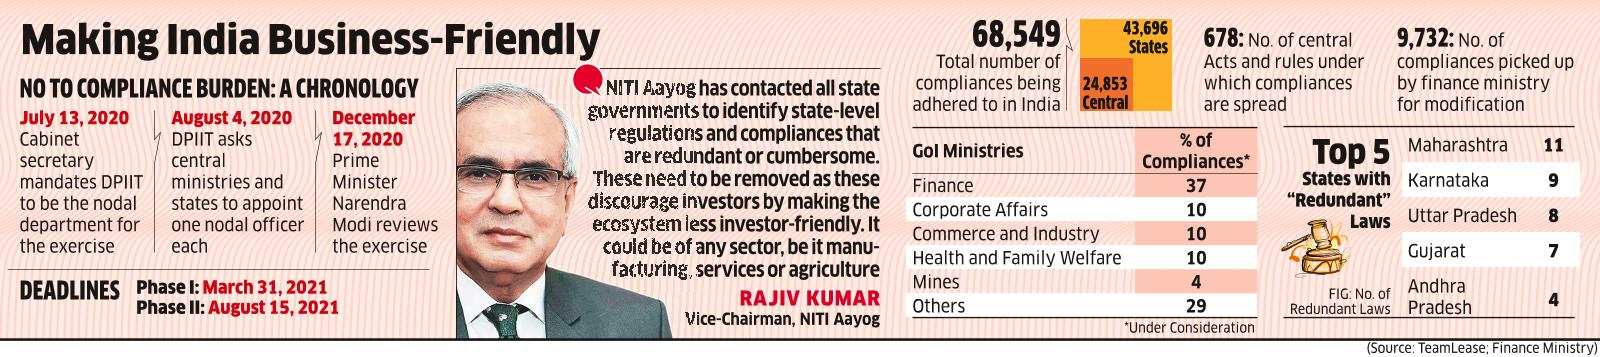 By I-Day, Bottlenecks may Clear to Ease Biz Compliances